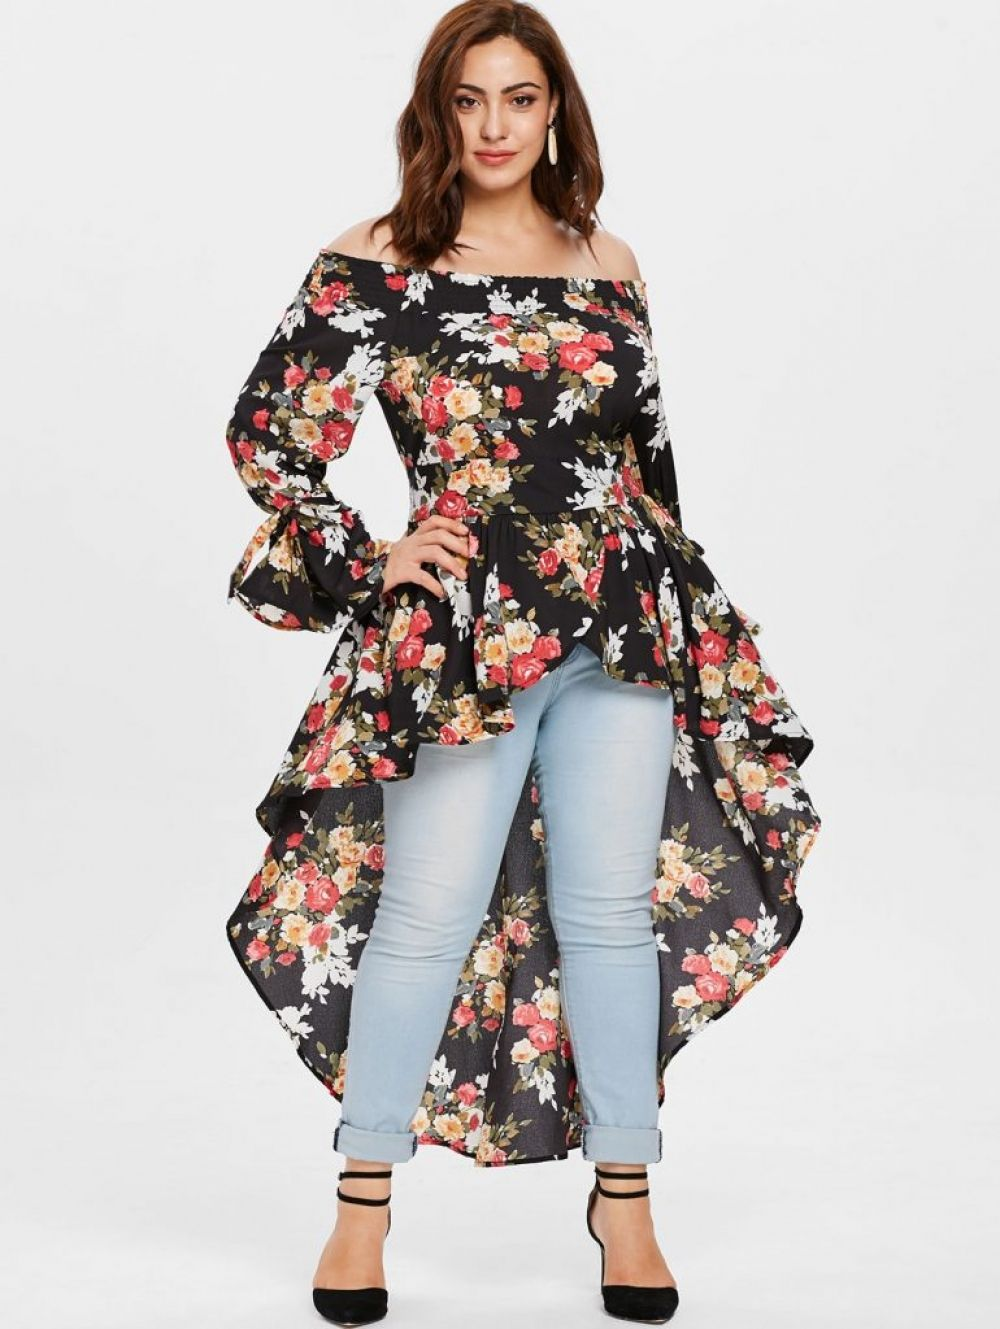 f399e54991e High Low Tops Plus Size Floral Shirts Price: 31.18 & FREE Shipping  #clothing #indozstyle